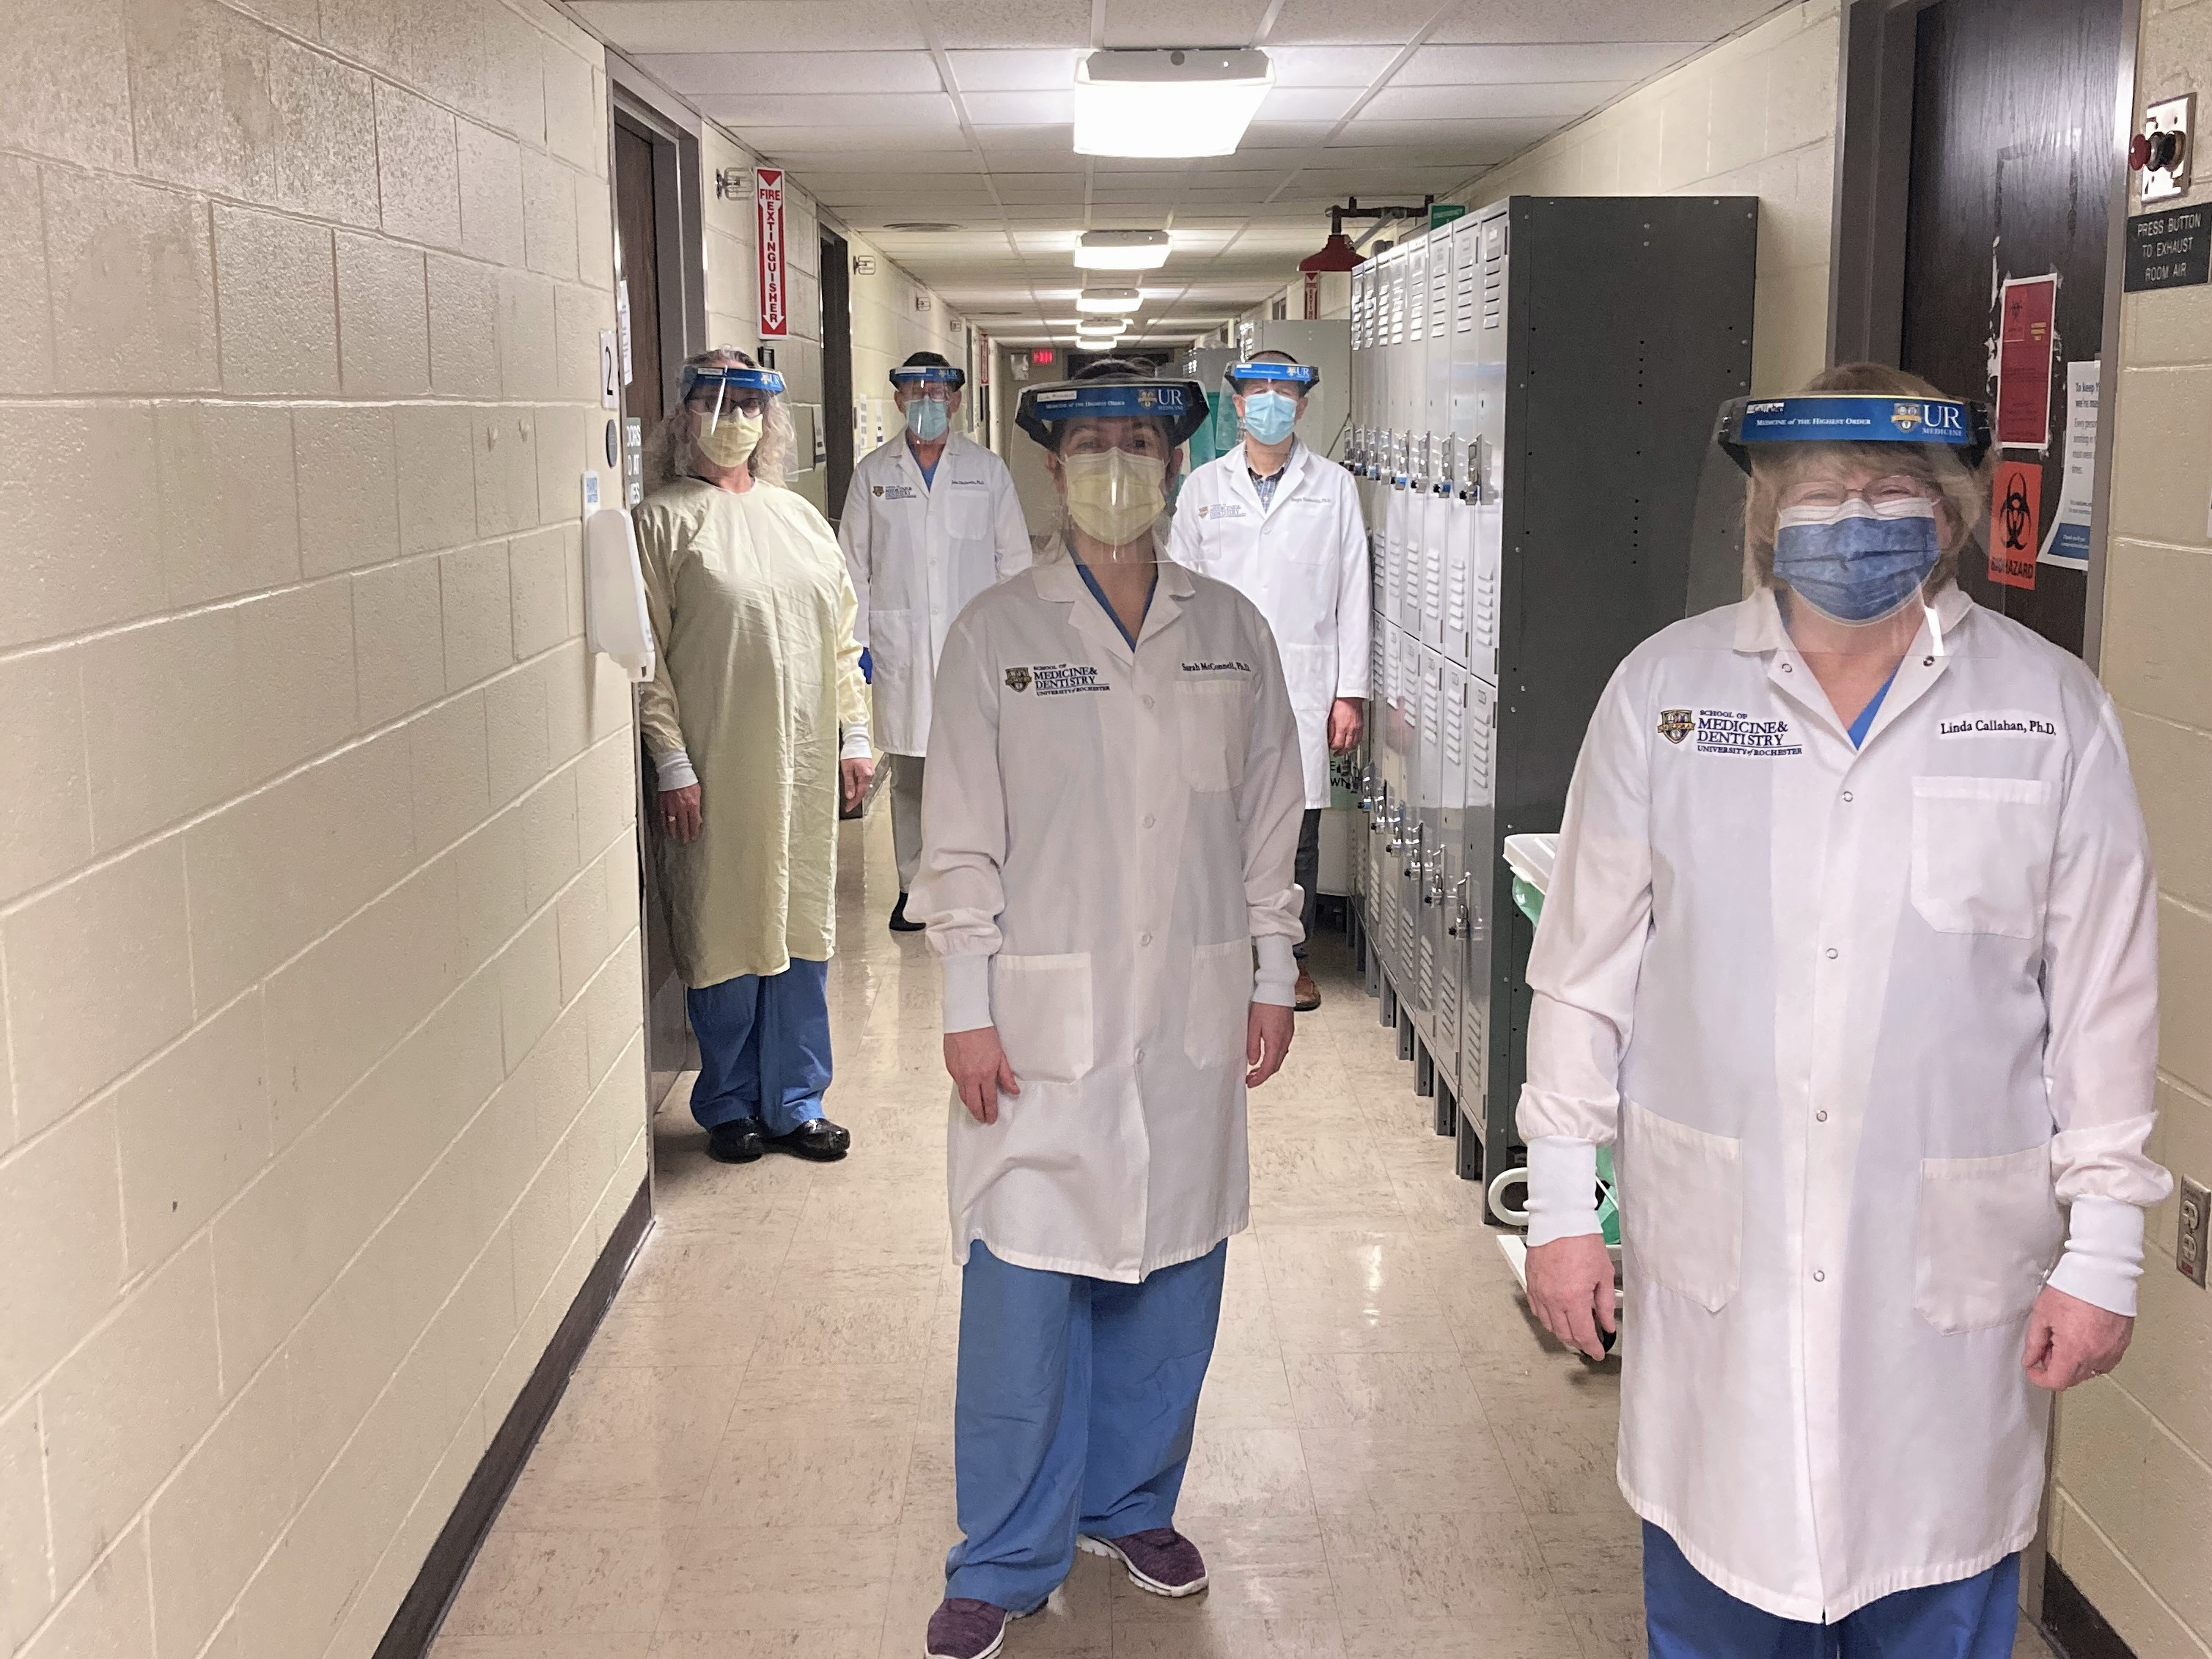 From Left: Jennifer Prutsman-Pfeiffer, Ph.D. (wearing the gown that students were required to wear in the anatomy laboratory), John Olschowka, Ph.D., Sarah McConnell, Ph.D., Sergiy Nadtochiy, Ph.D., Linda Callahan, Ph.D.   Not pictured: David Kornack, Ph.D., Diane Piekut, Ph.D., Martha Gdowski, Ph.D.